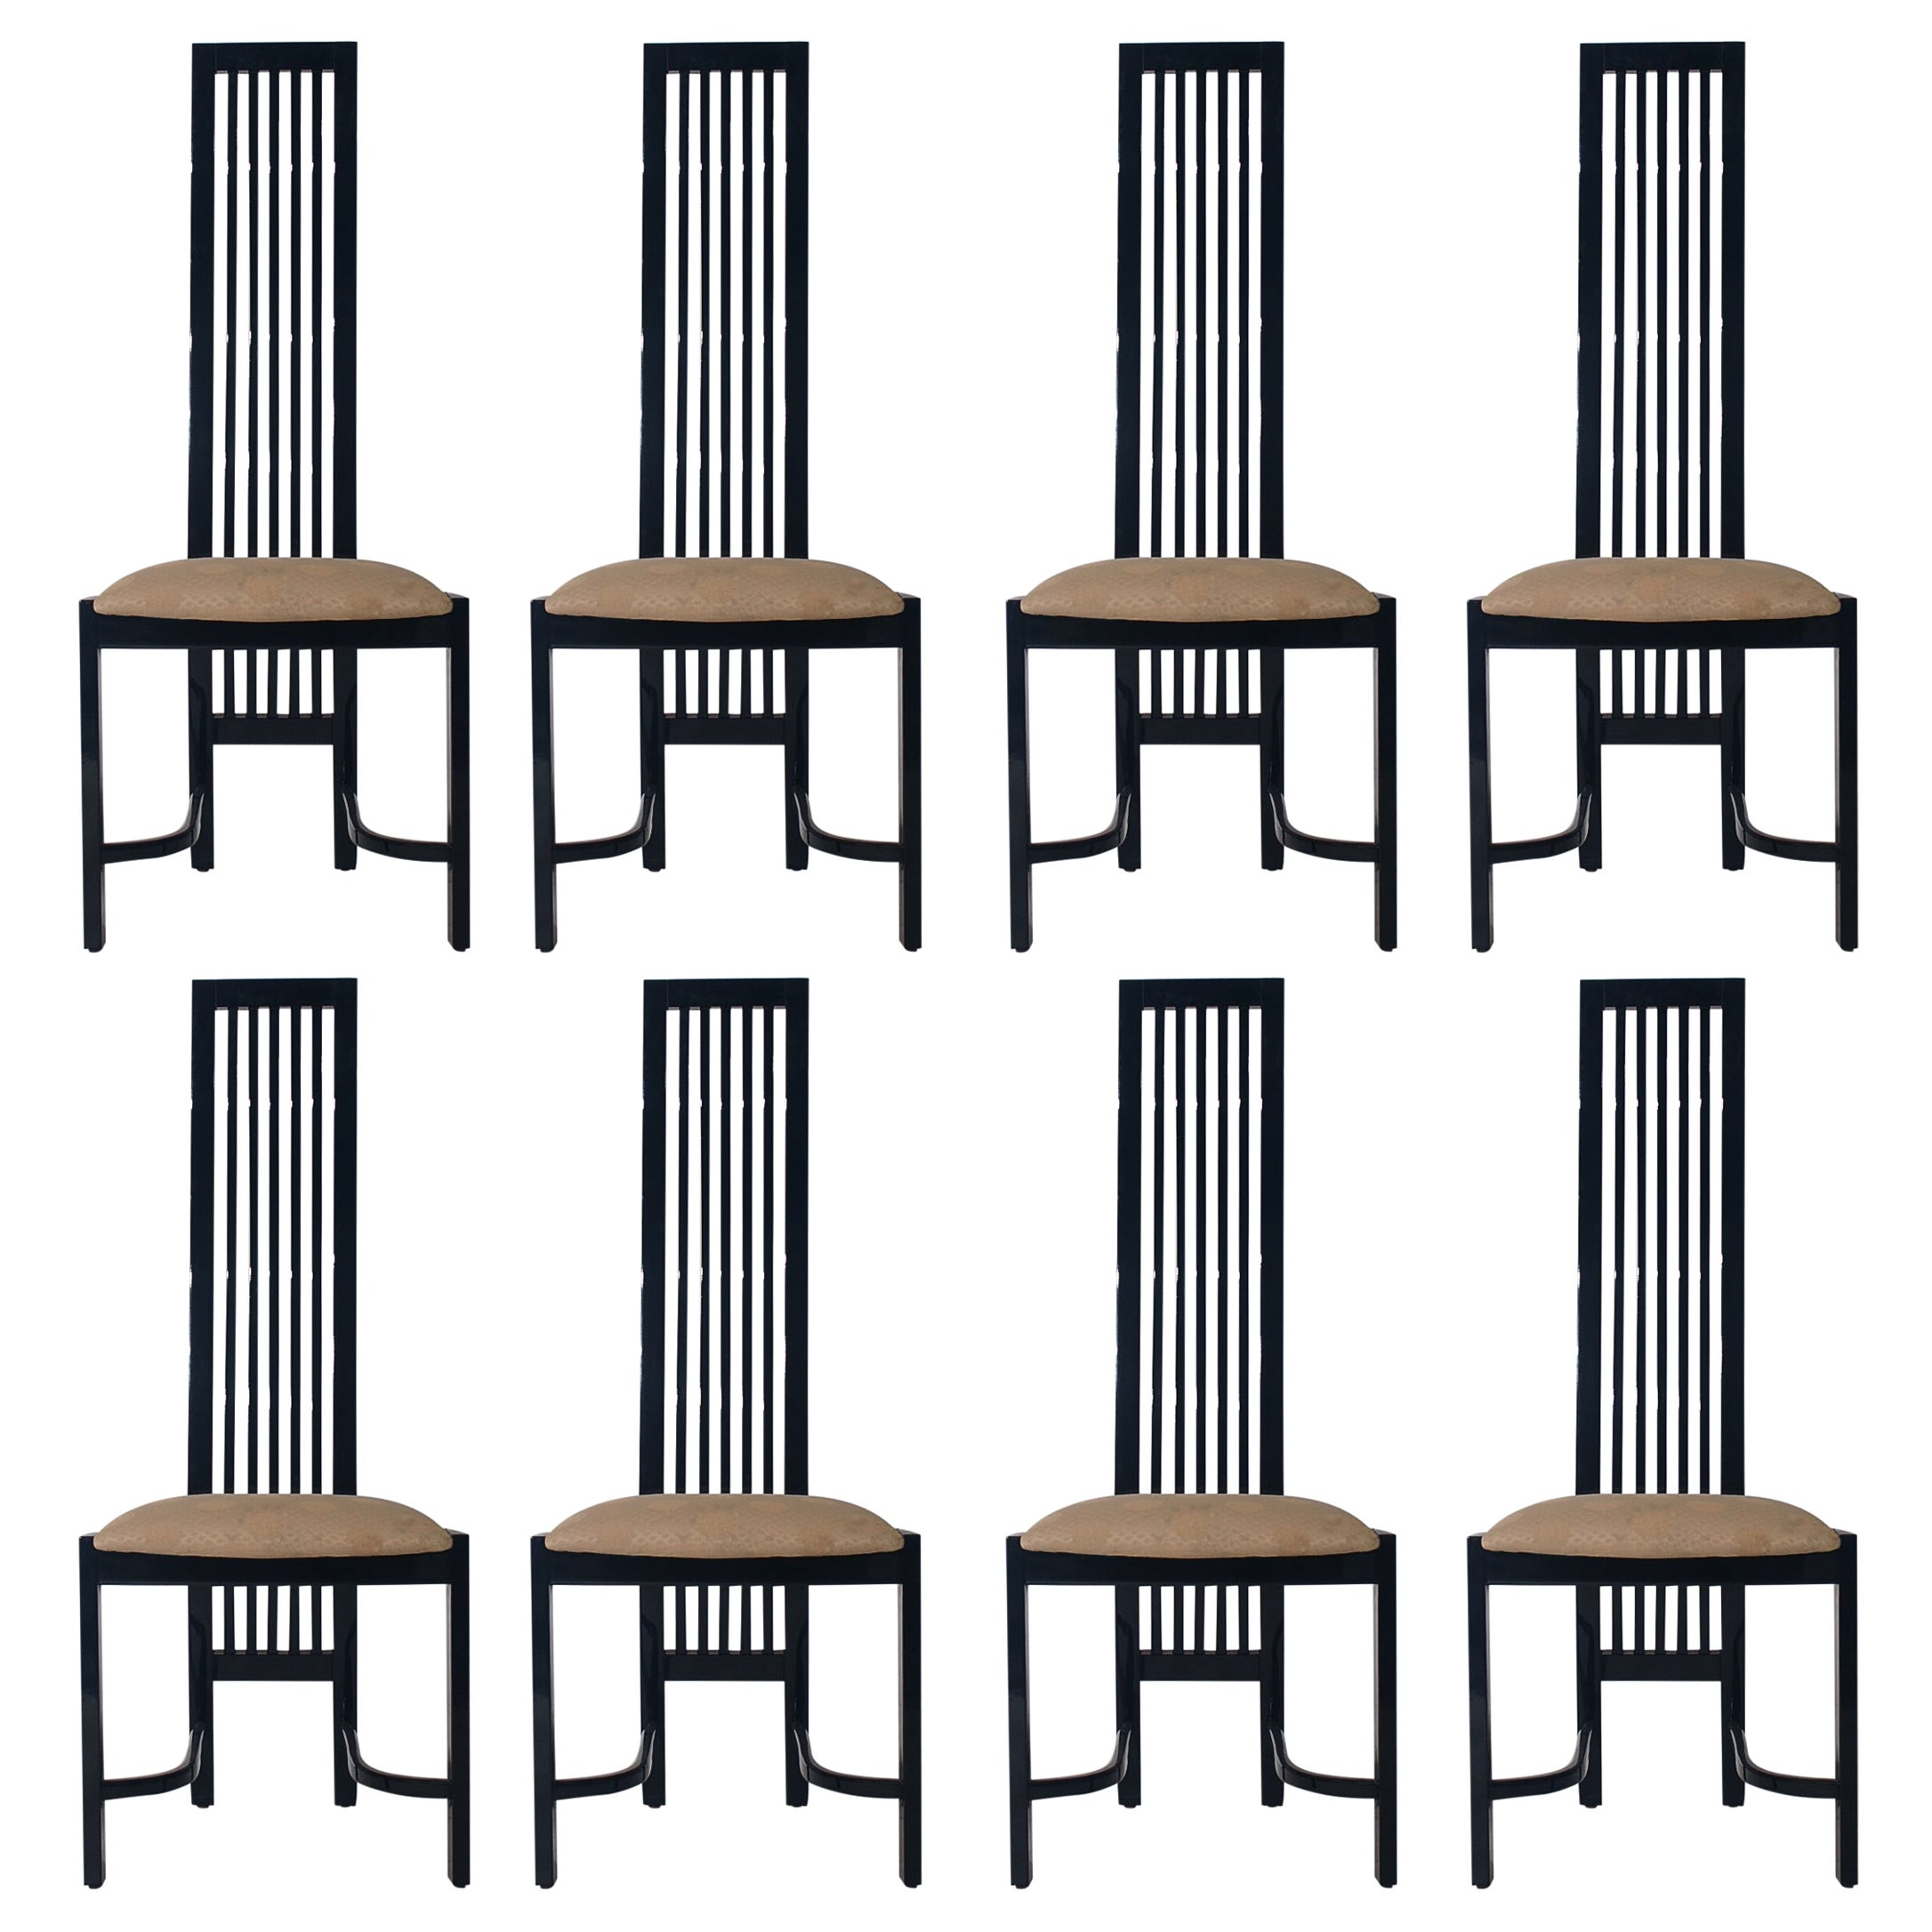 Set of Eight Postmodern High Back Spindle Dining Chairs from Spain in Black